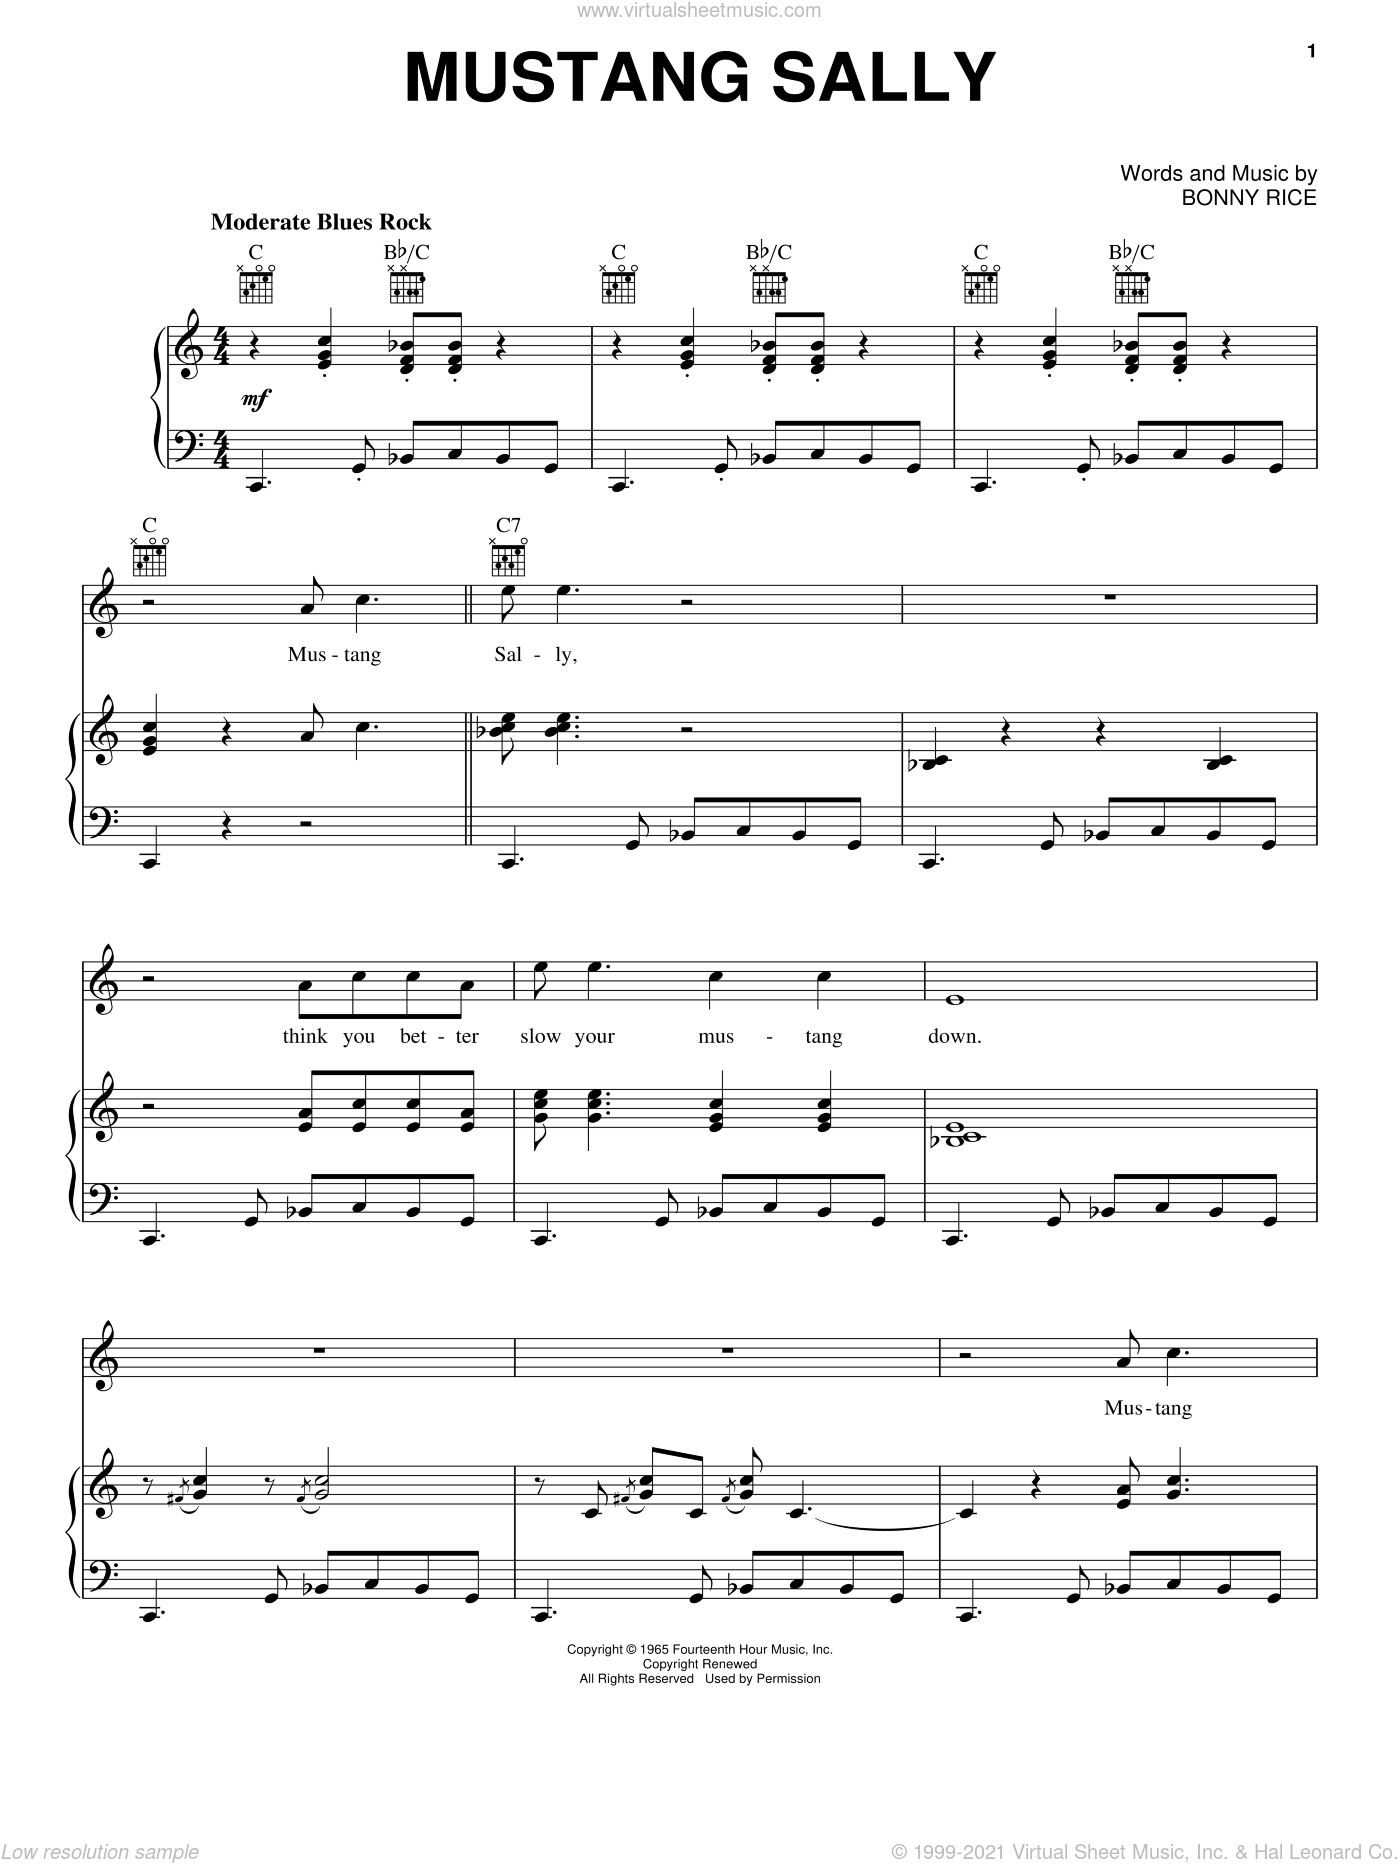 Mustang Sally sheet music for voice, piano or guitar by Wilson Pickett and Bonny Rice, intermediate skill level